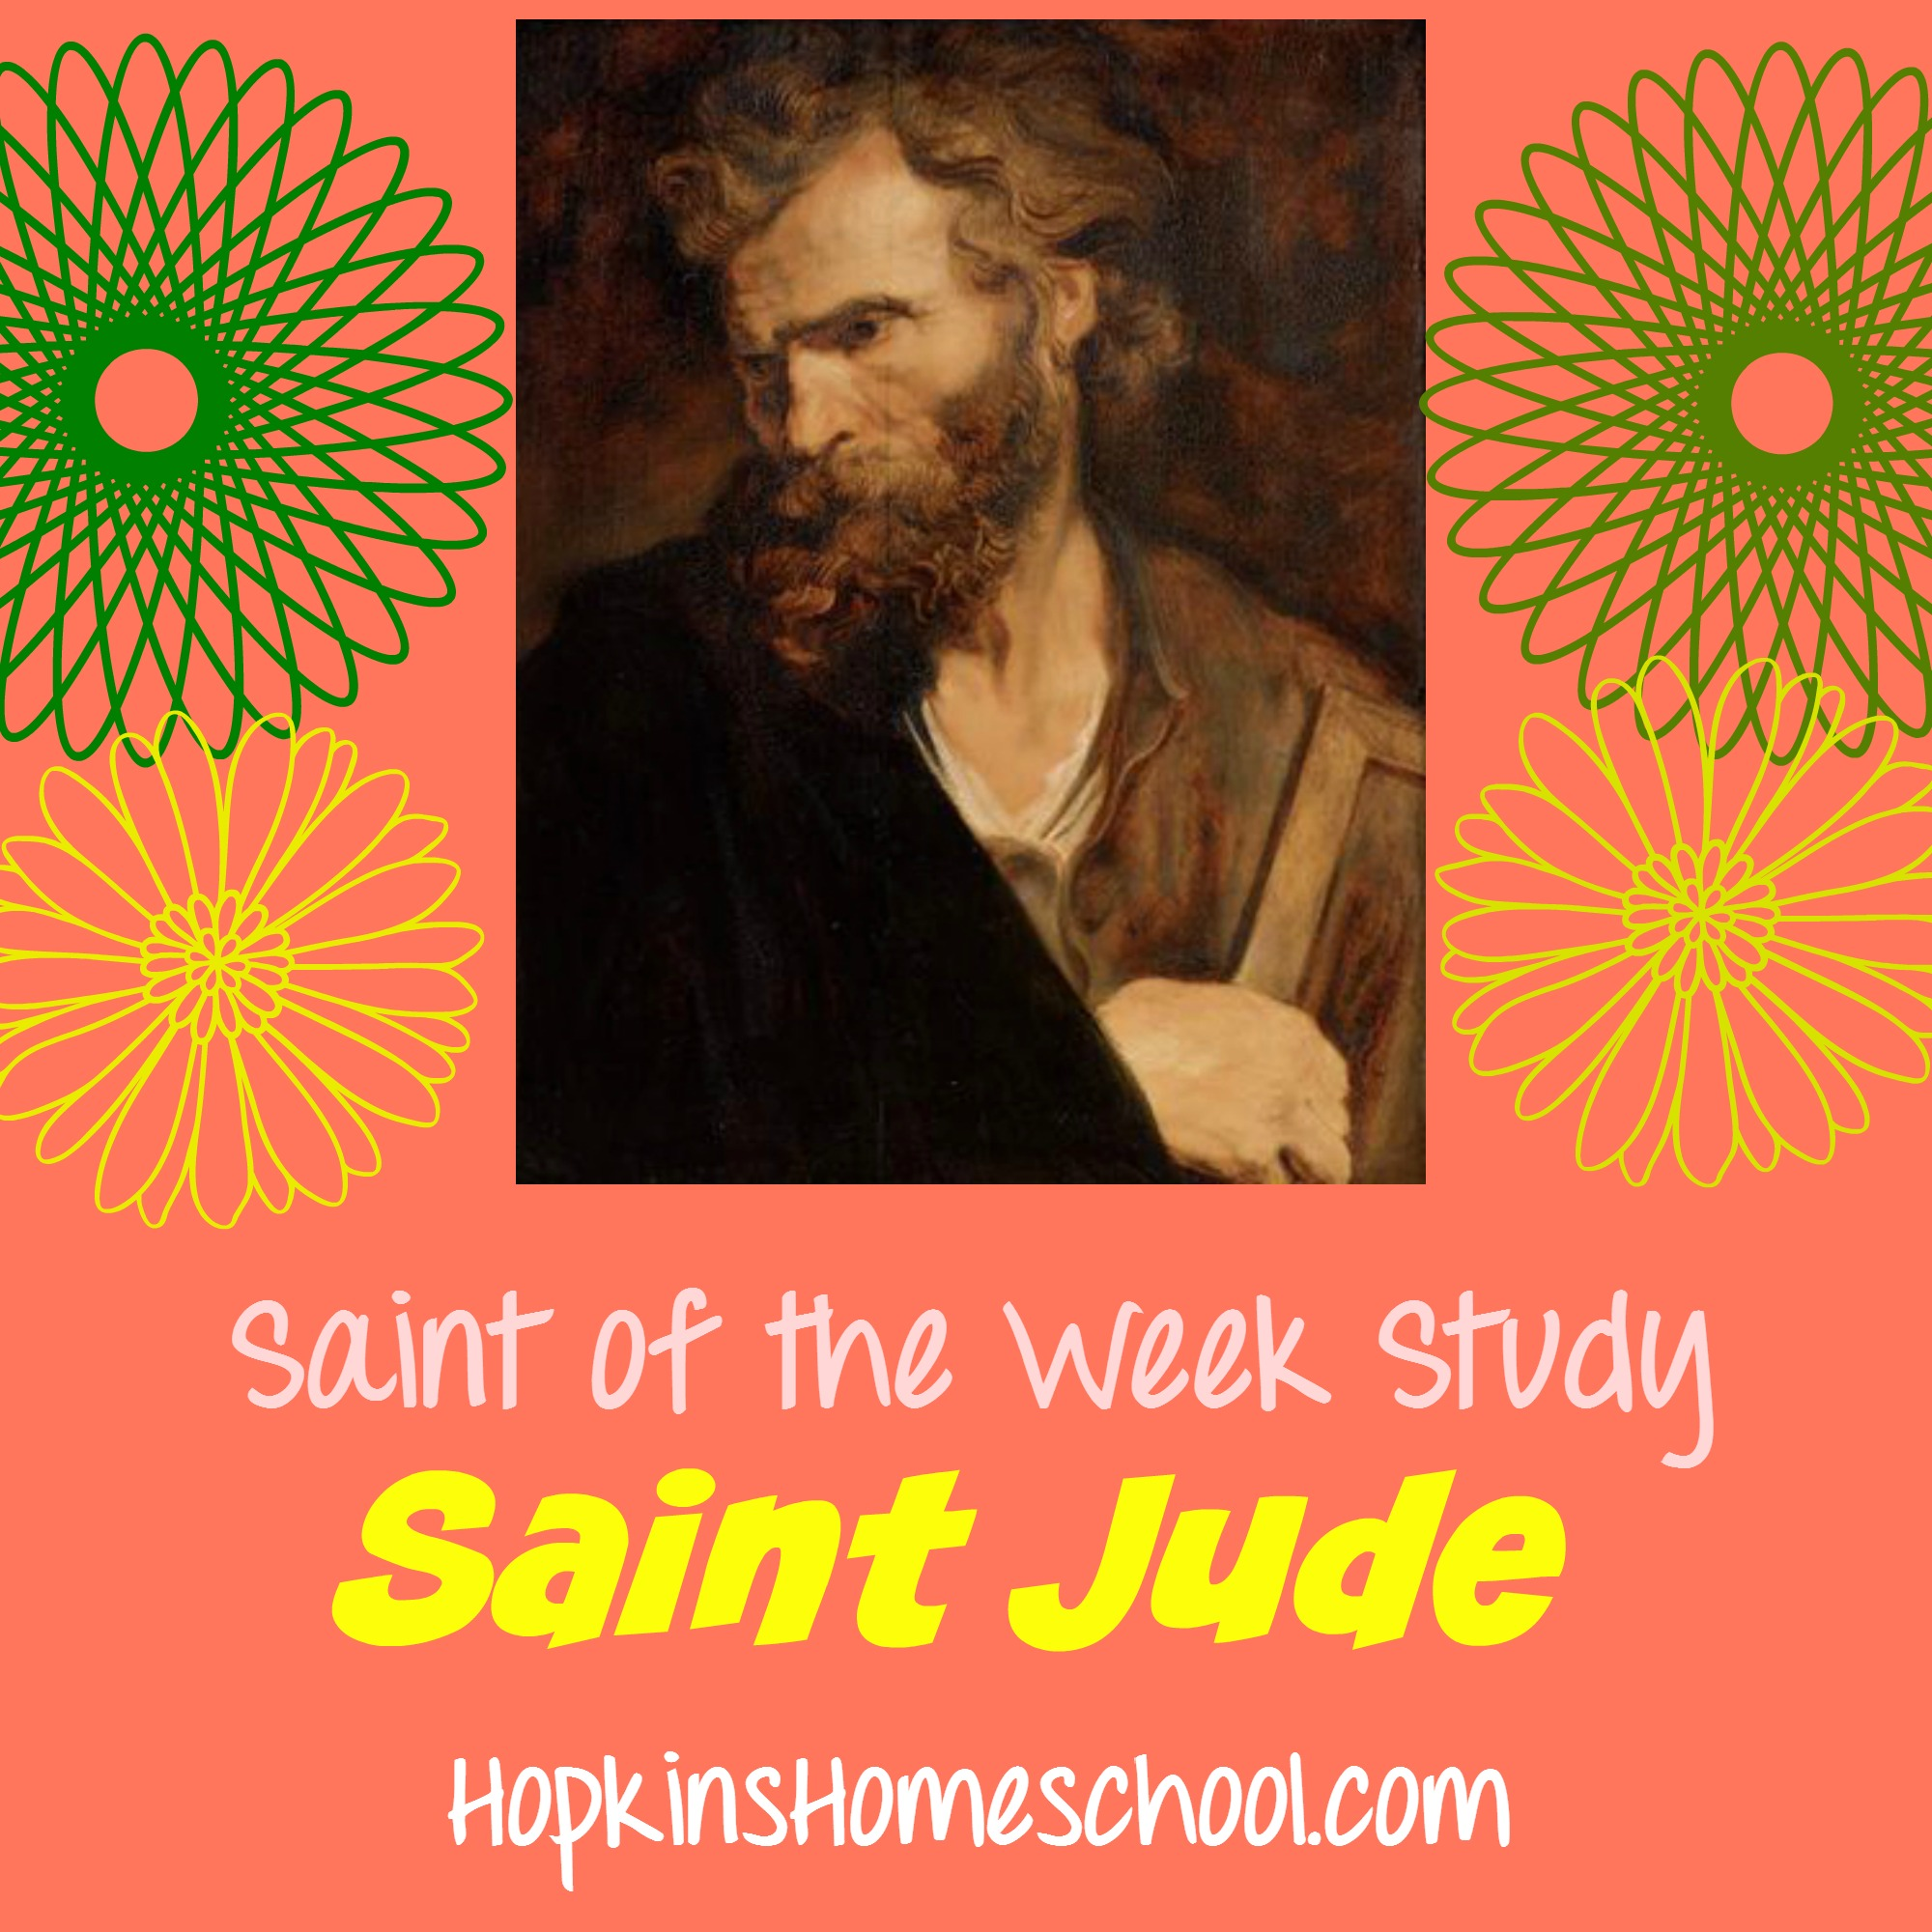 Saint of the Week St. Jude